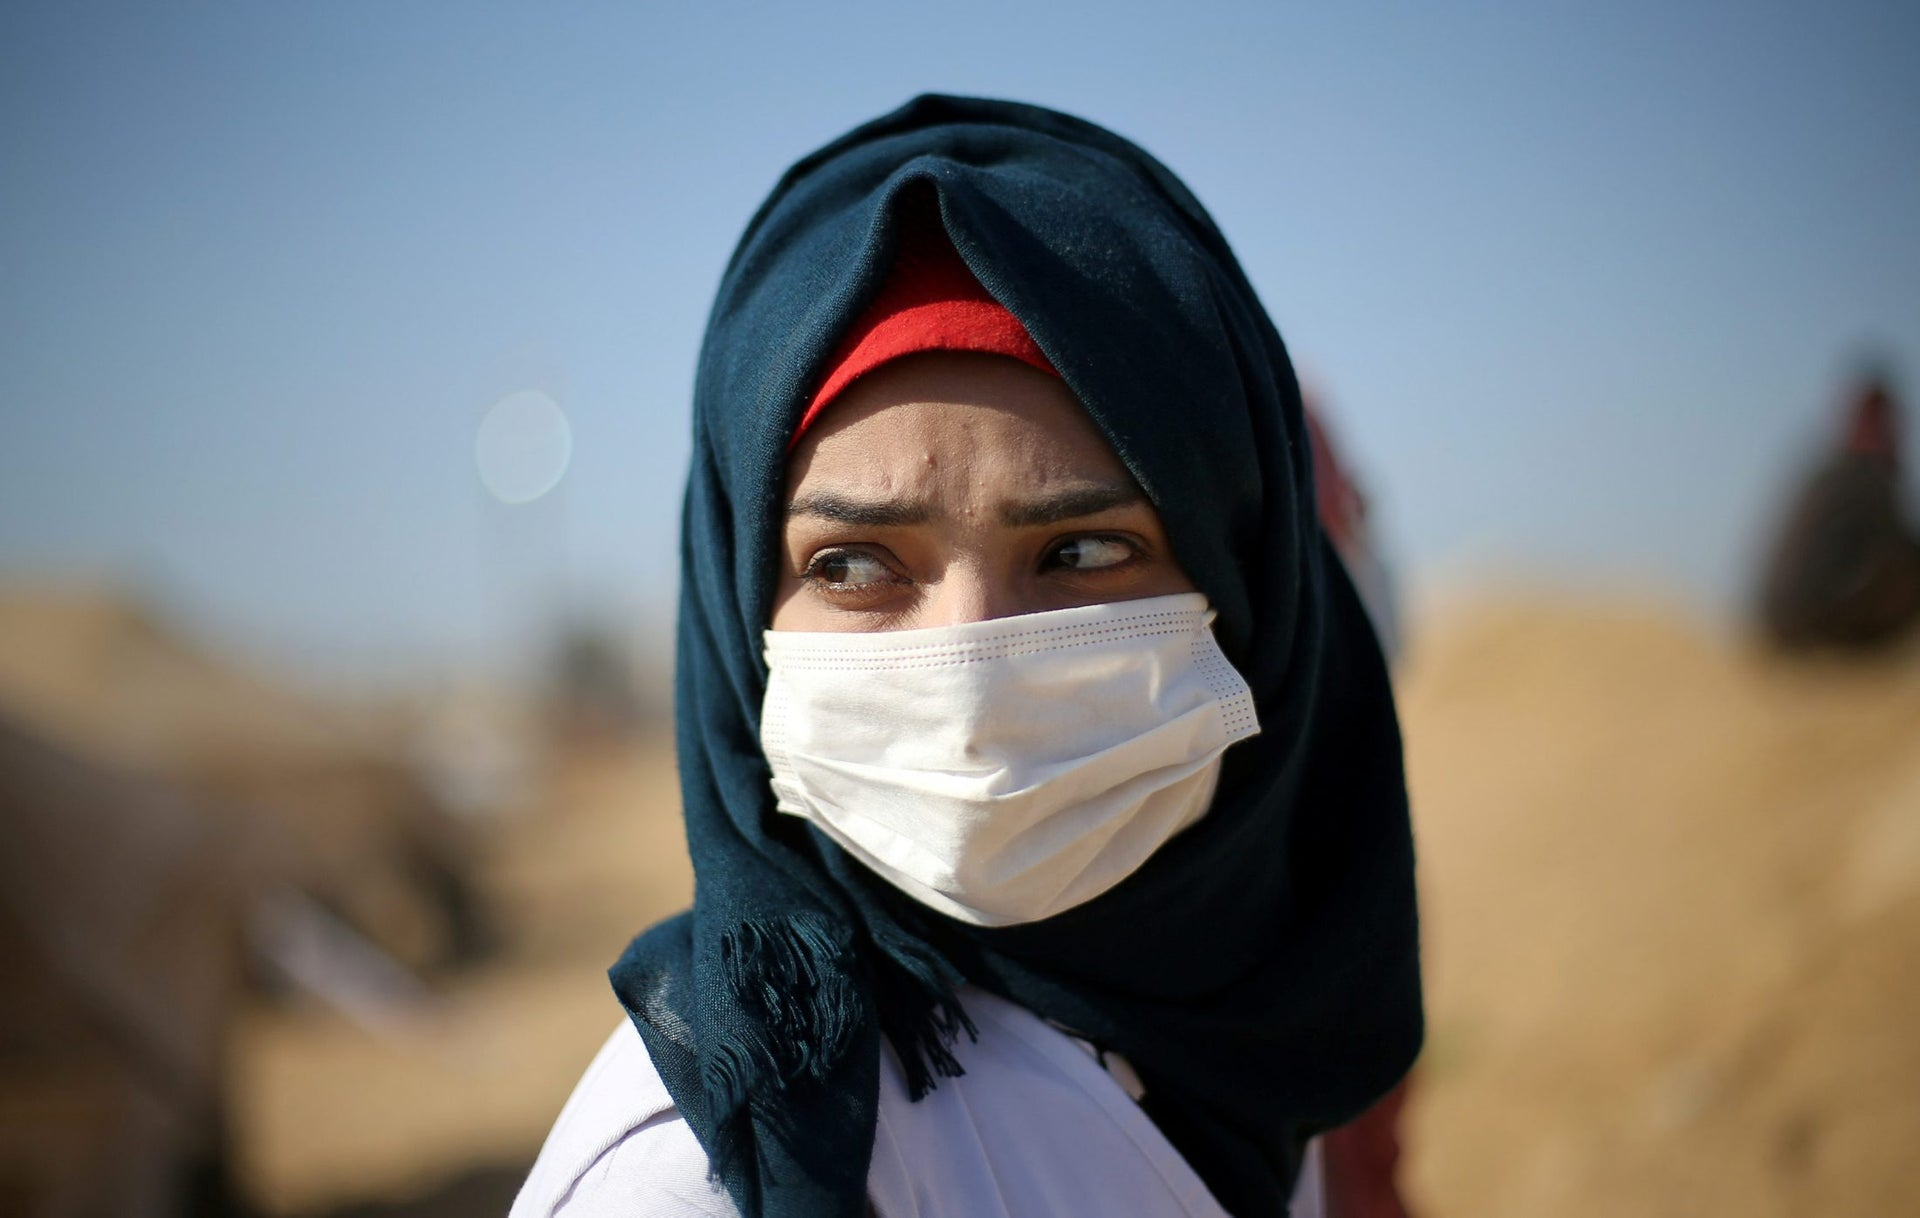 A Palestinian medic wears a mask to protect herself from inhaling tear gas fired by Israeli troops during a protest at the Israel-Gaza border in the southern Gaza Strip April 9, 2018. Picture taken April 9, 2018.